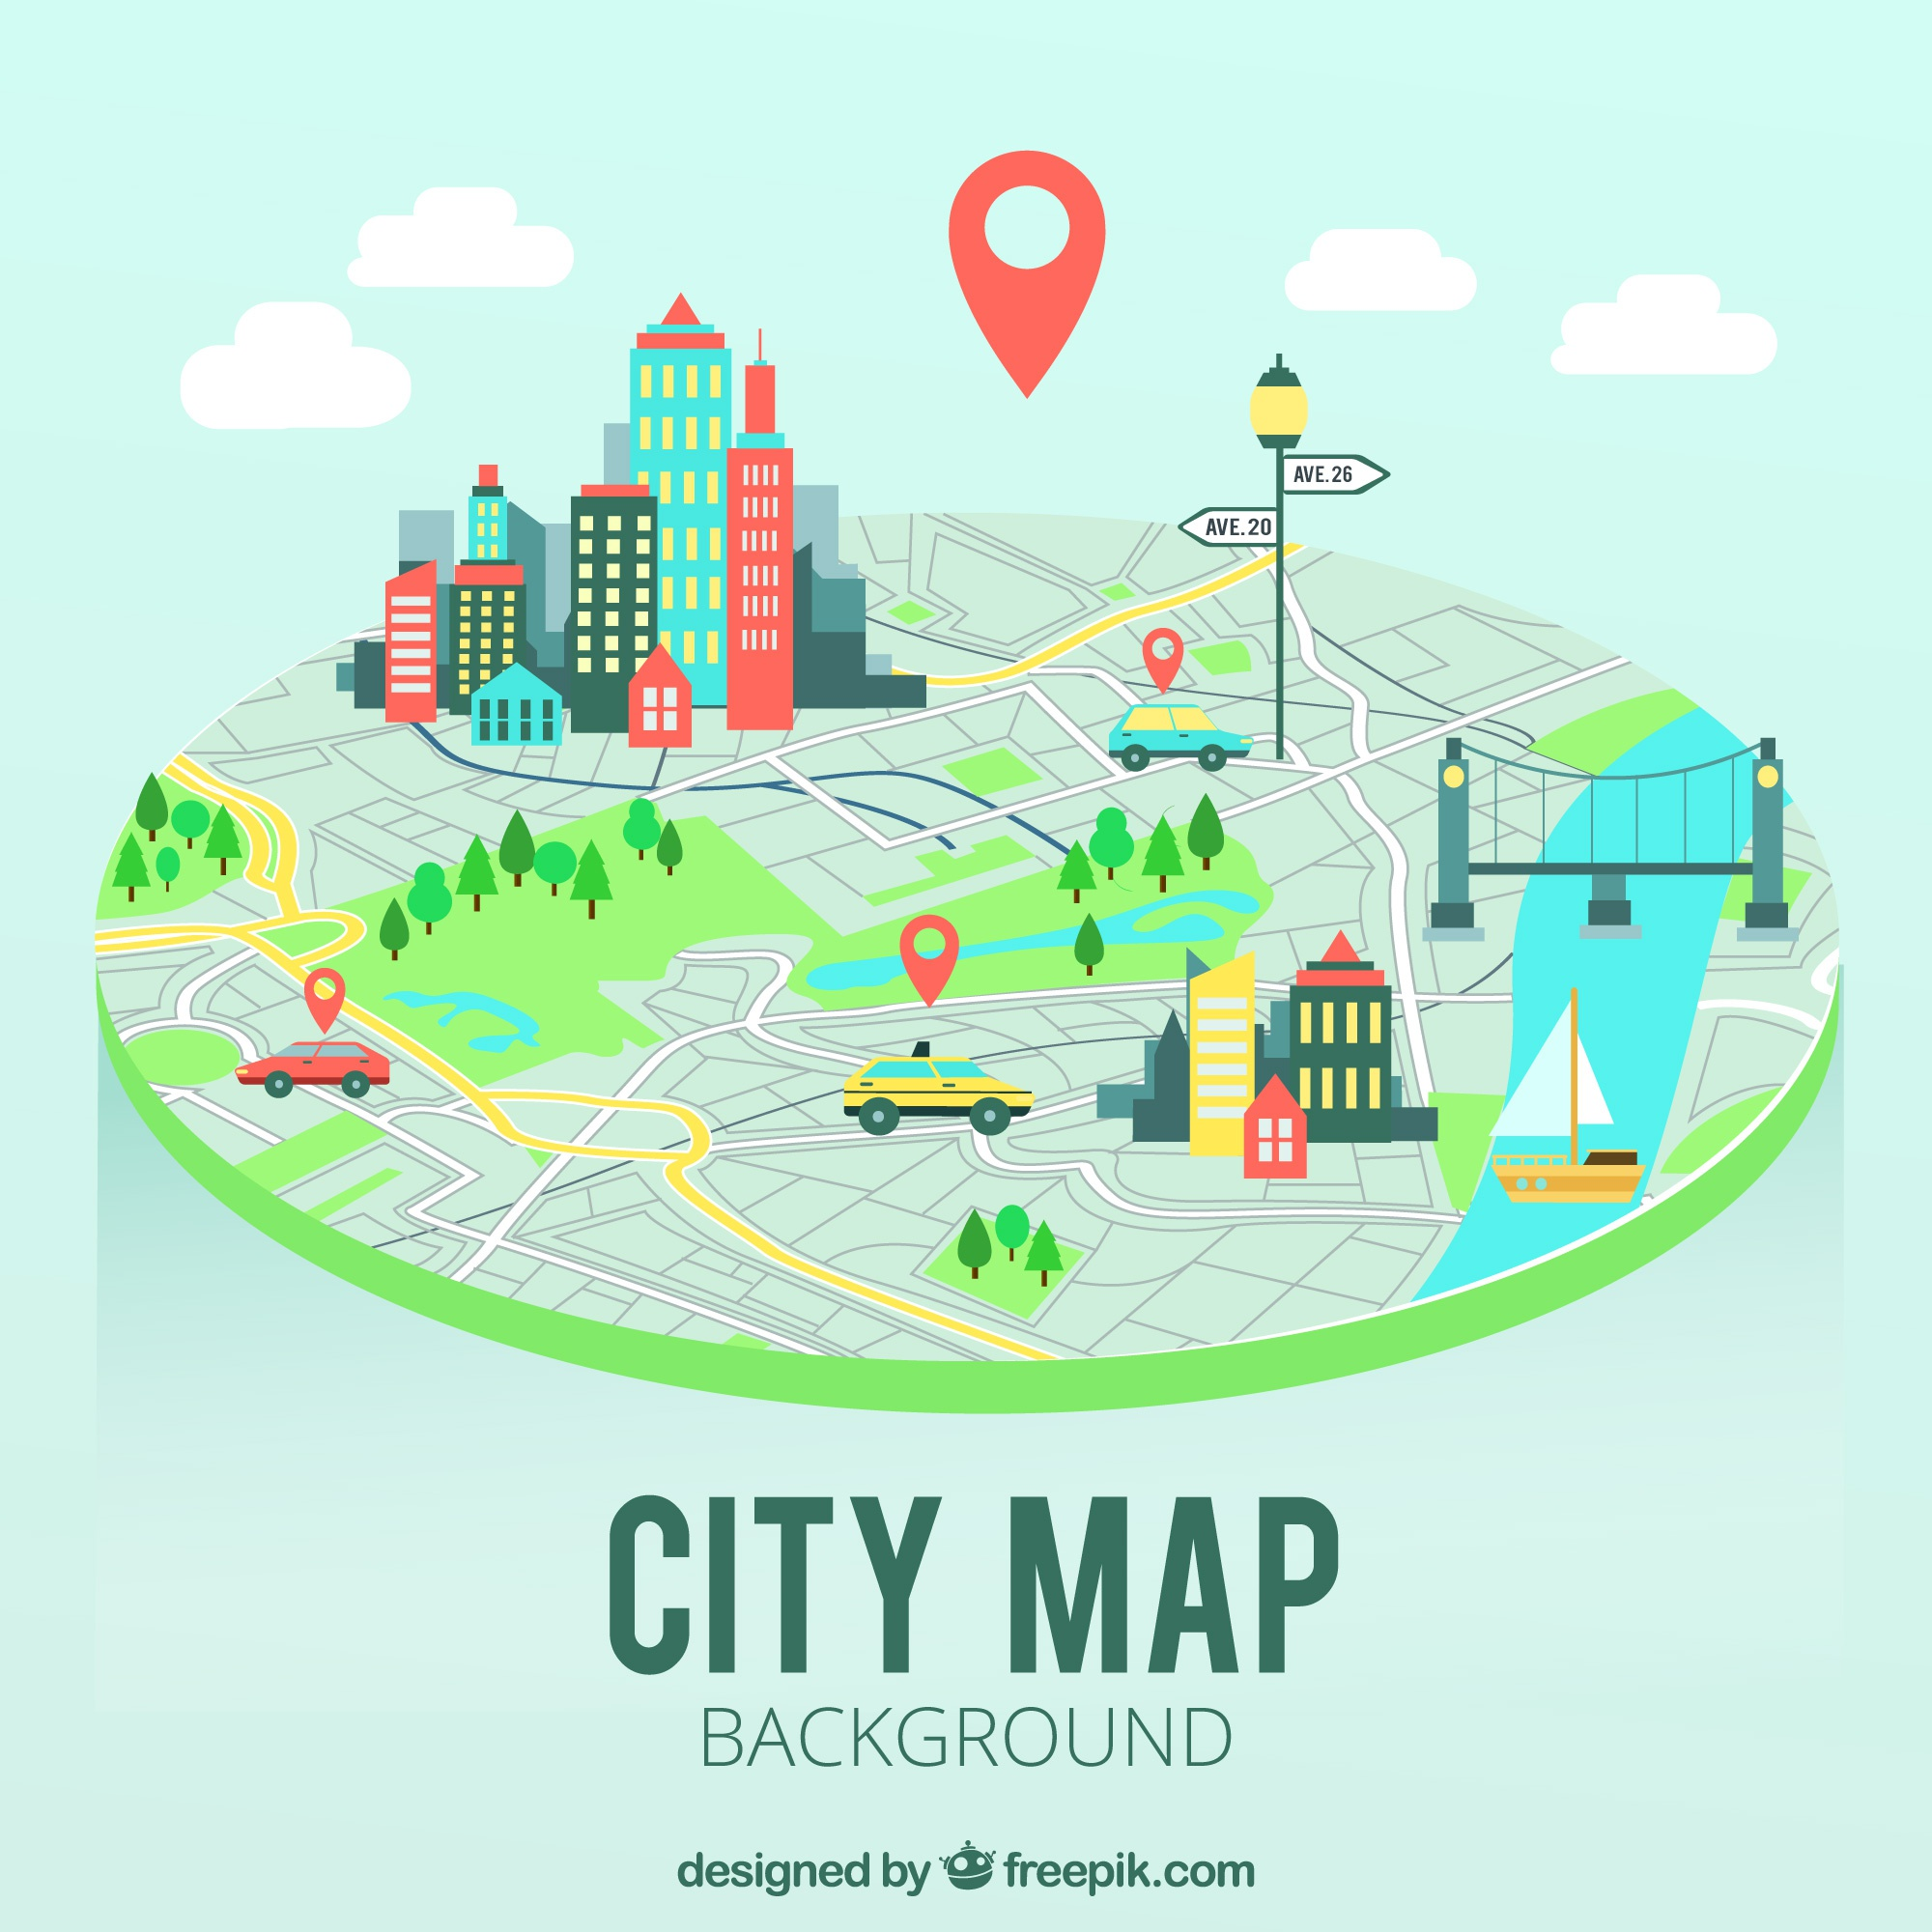 City map background